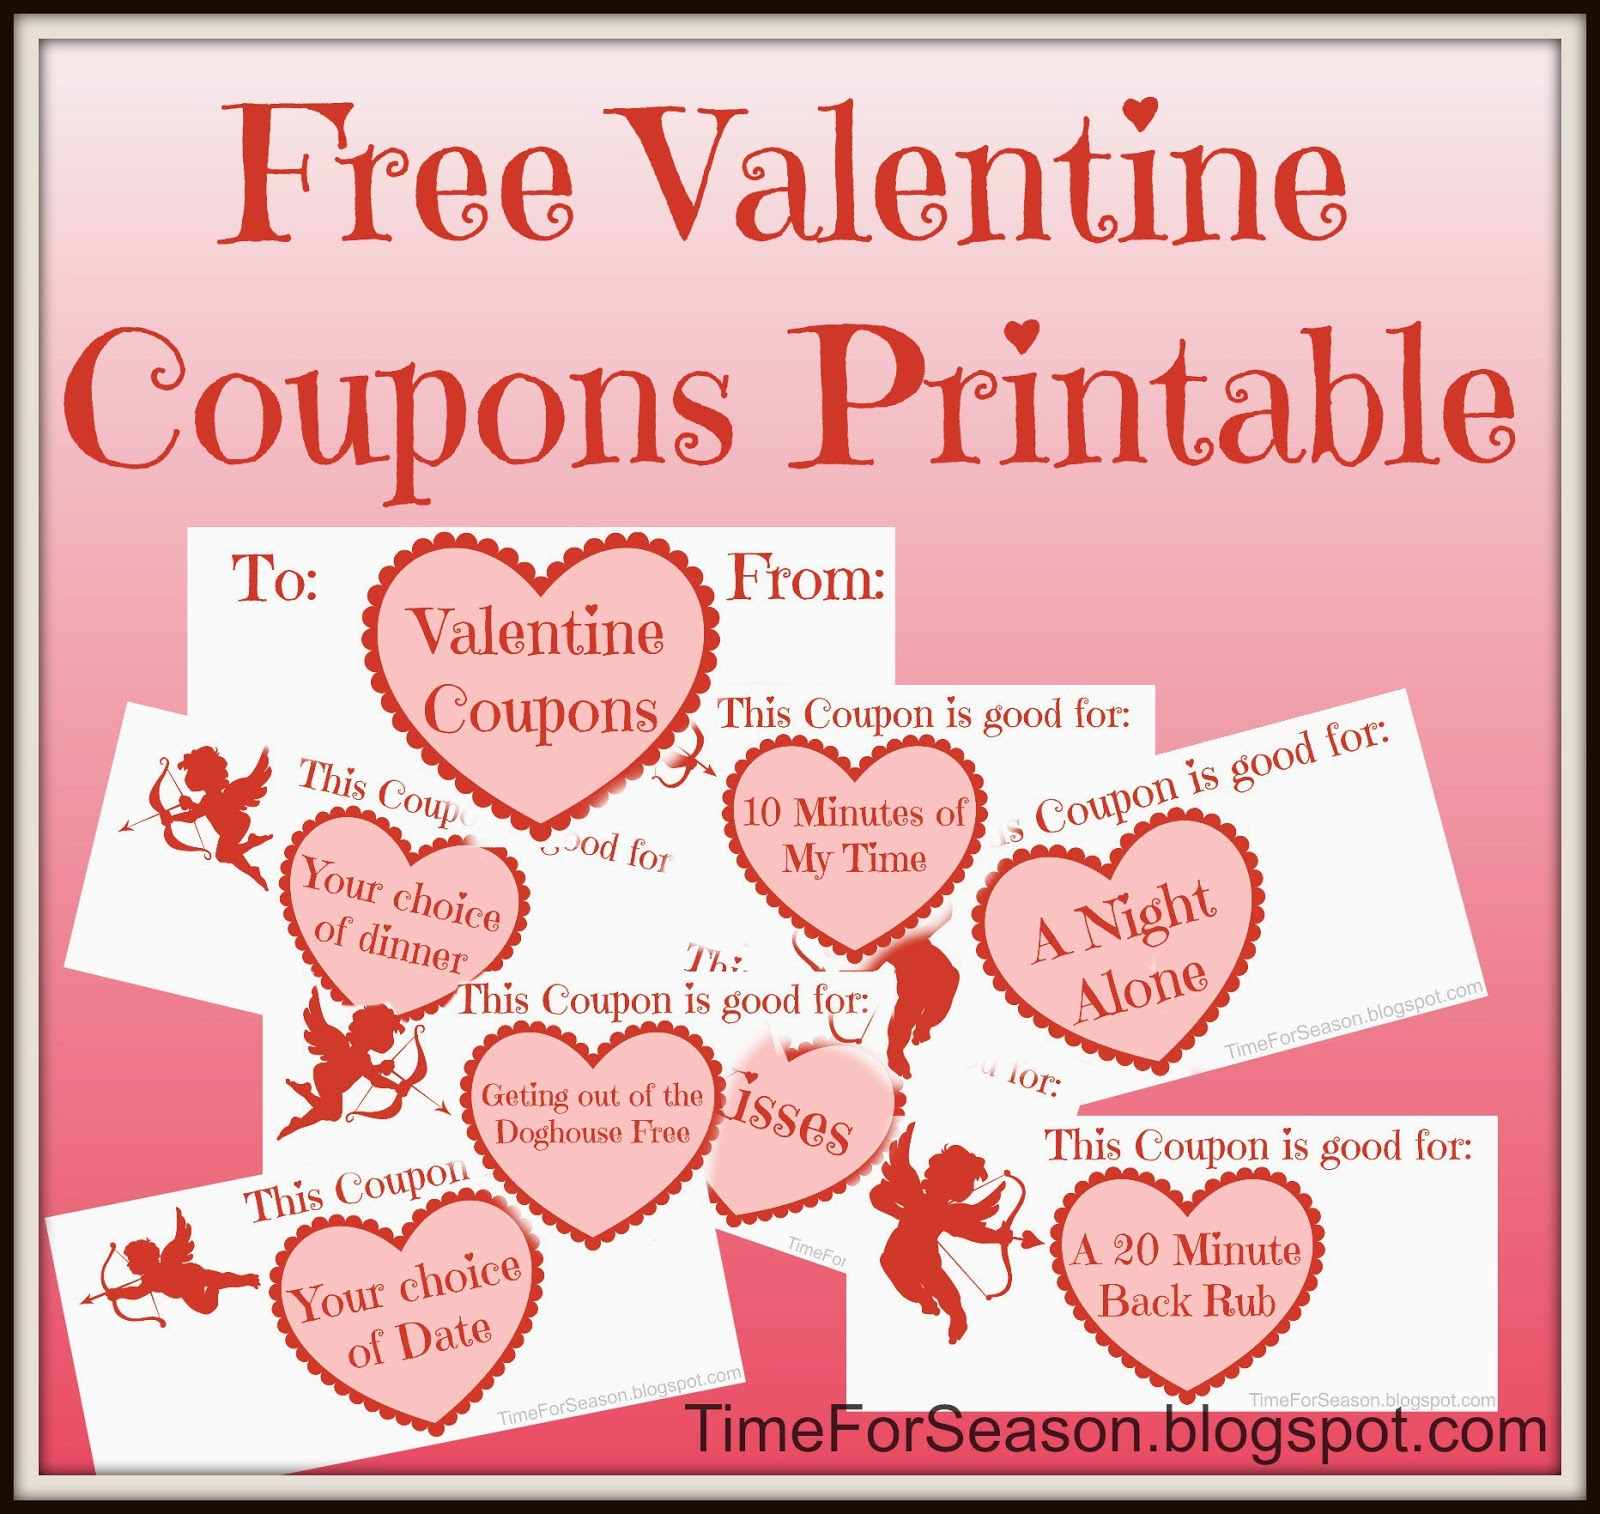 Free printable valentine coupon templates - visualbrains.info